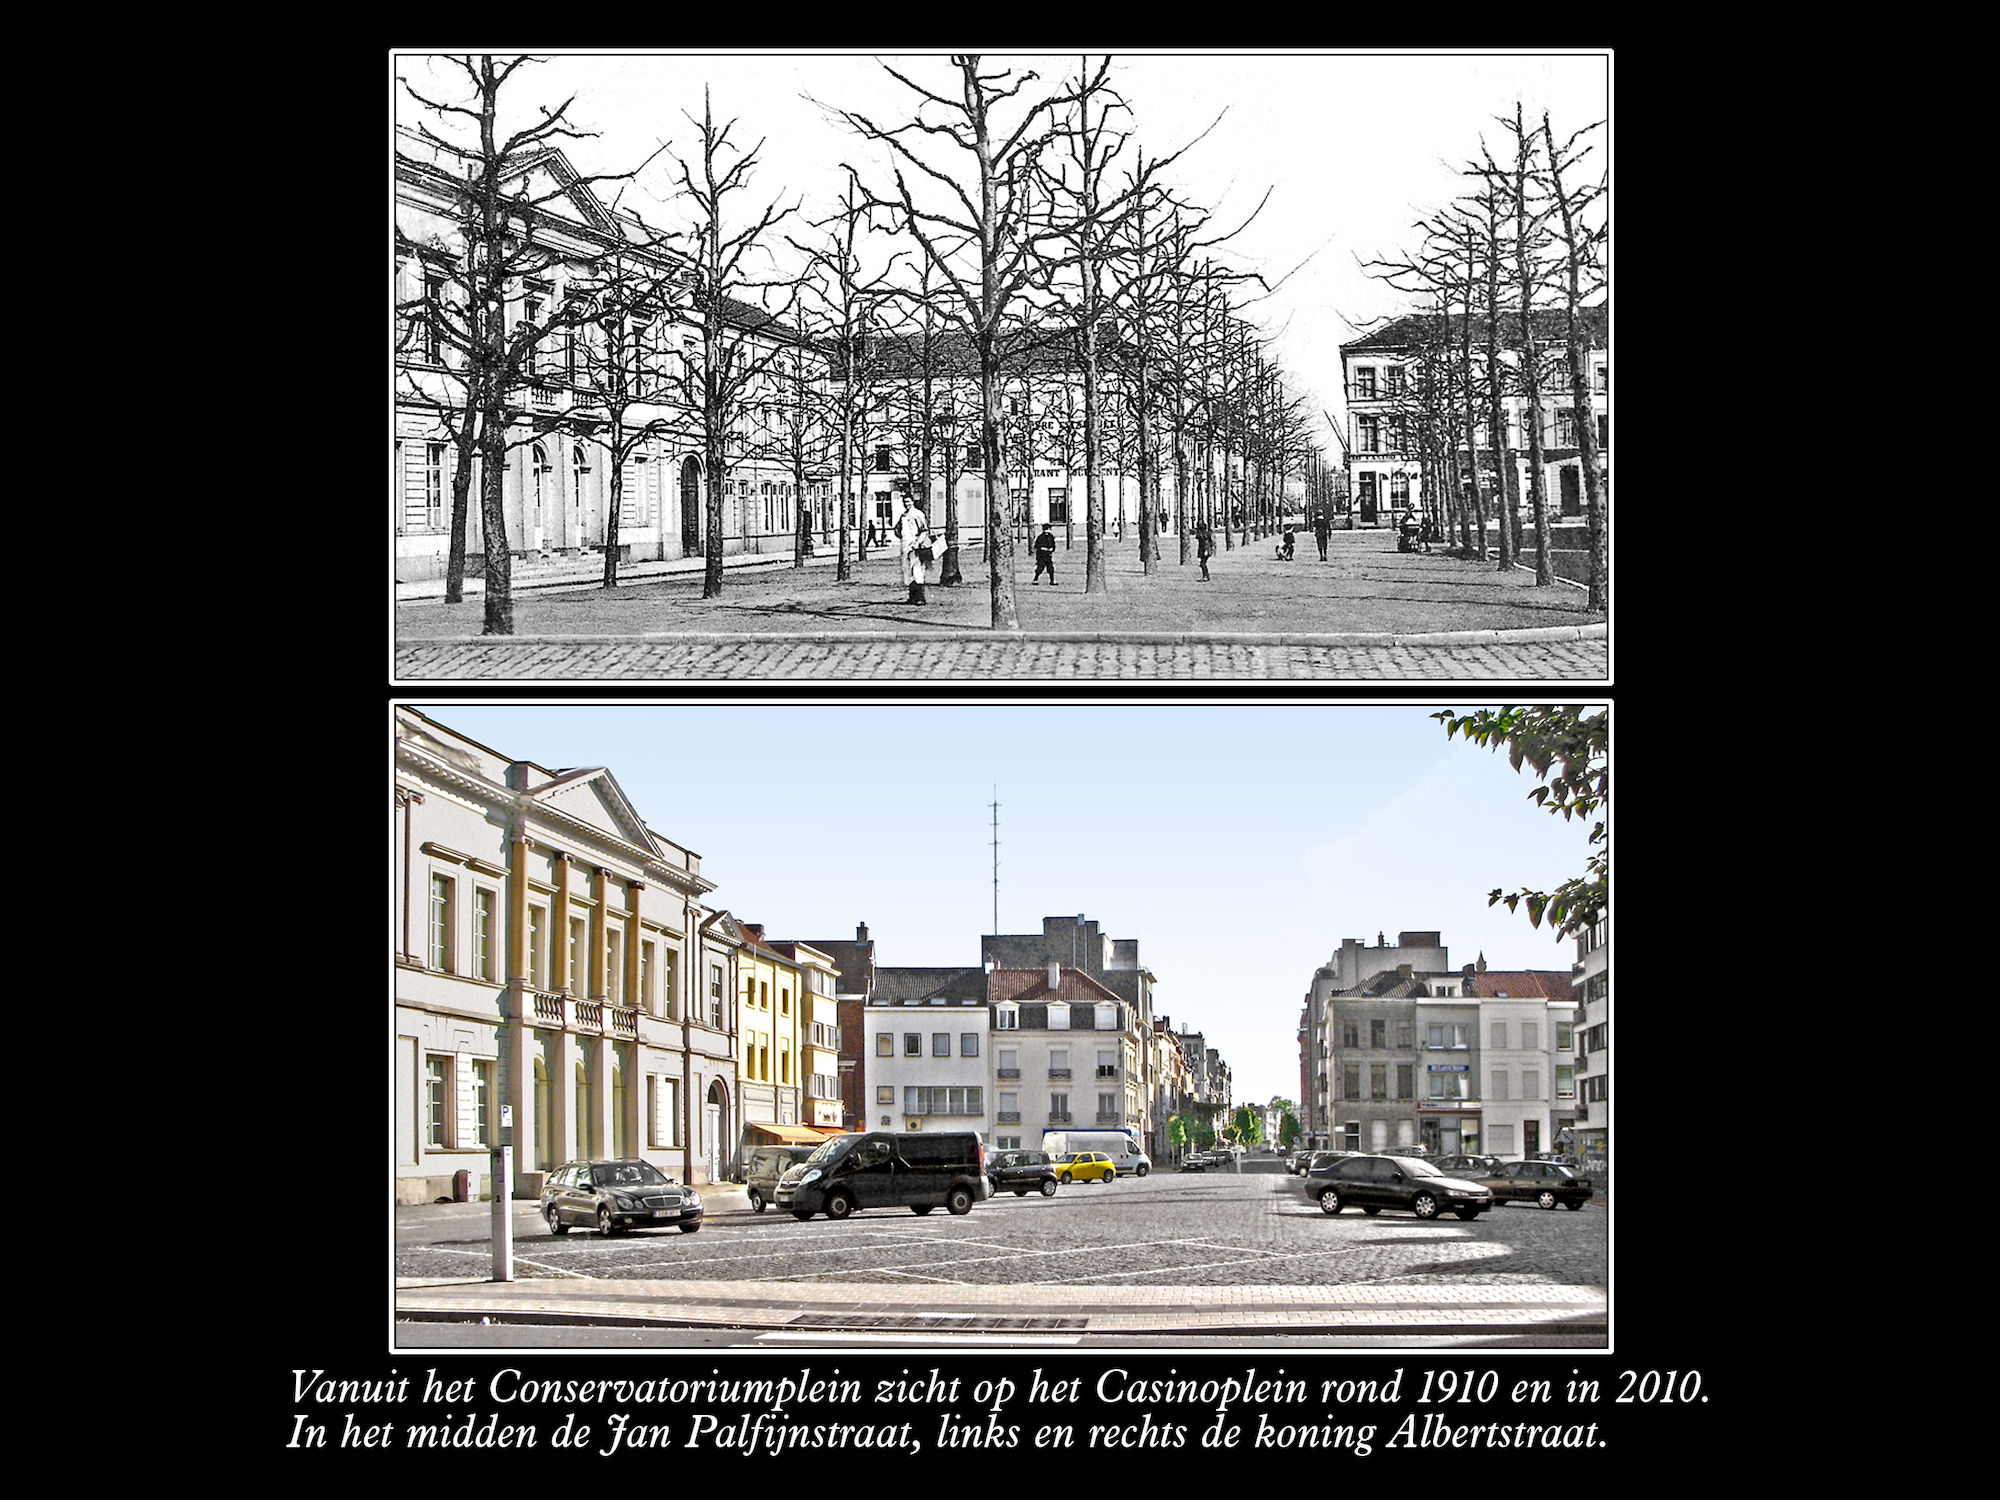 Casinoplein ca 1910 en  2010